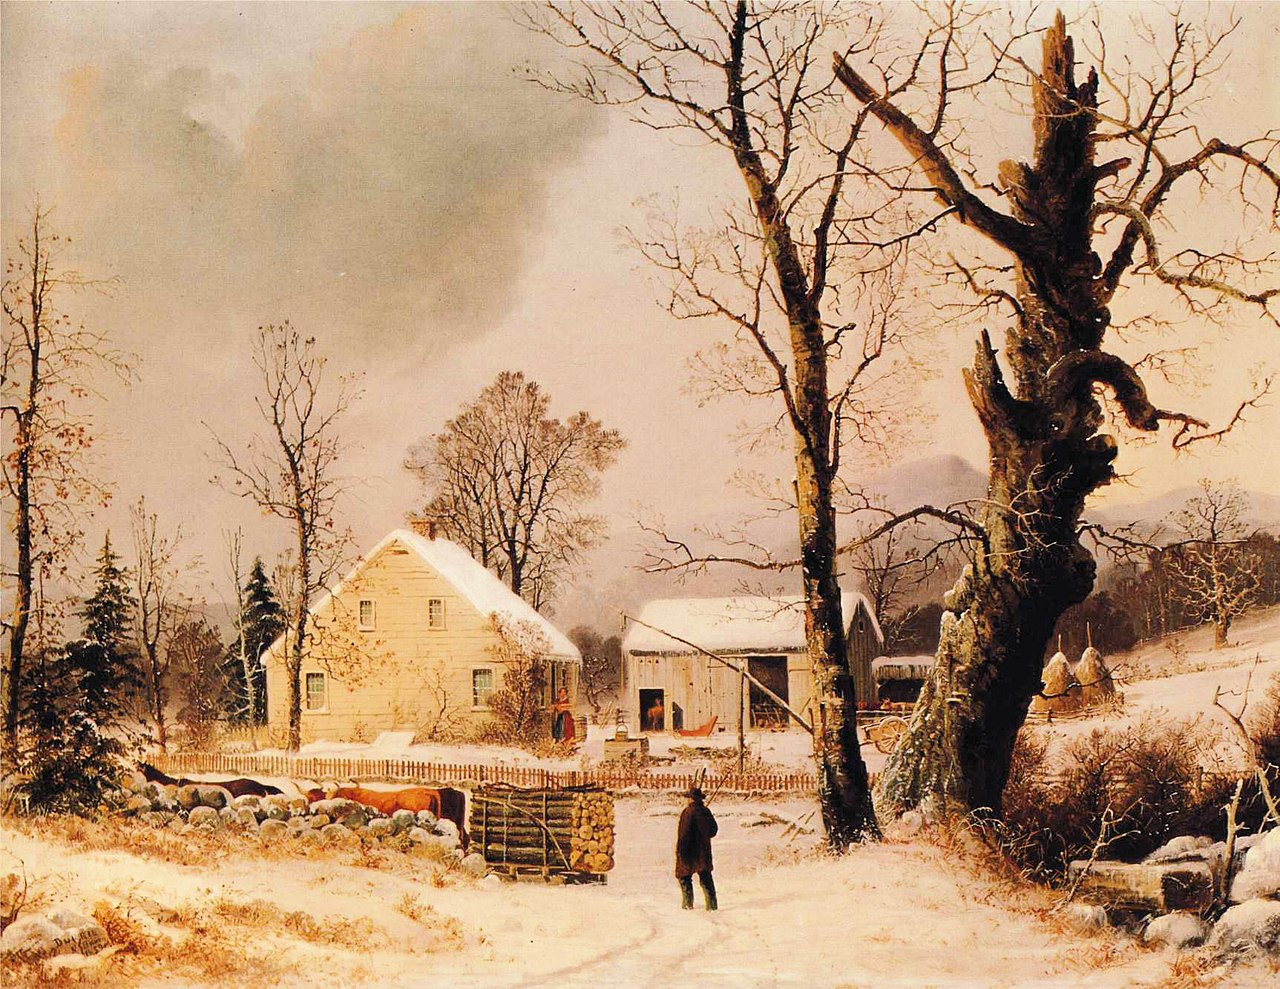 https://upload.wikimedia.org/wikipedia/commons/thumb/5/56/George_Henry_Durrie_-_Winter_Scene_in_New_England.JPG/1280px-George_Henry_Durrie_-_Winter_Scene_in_New_England.JPG